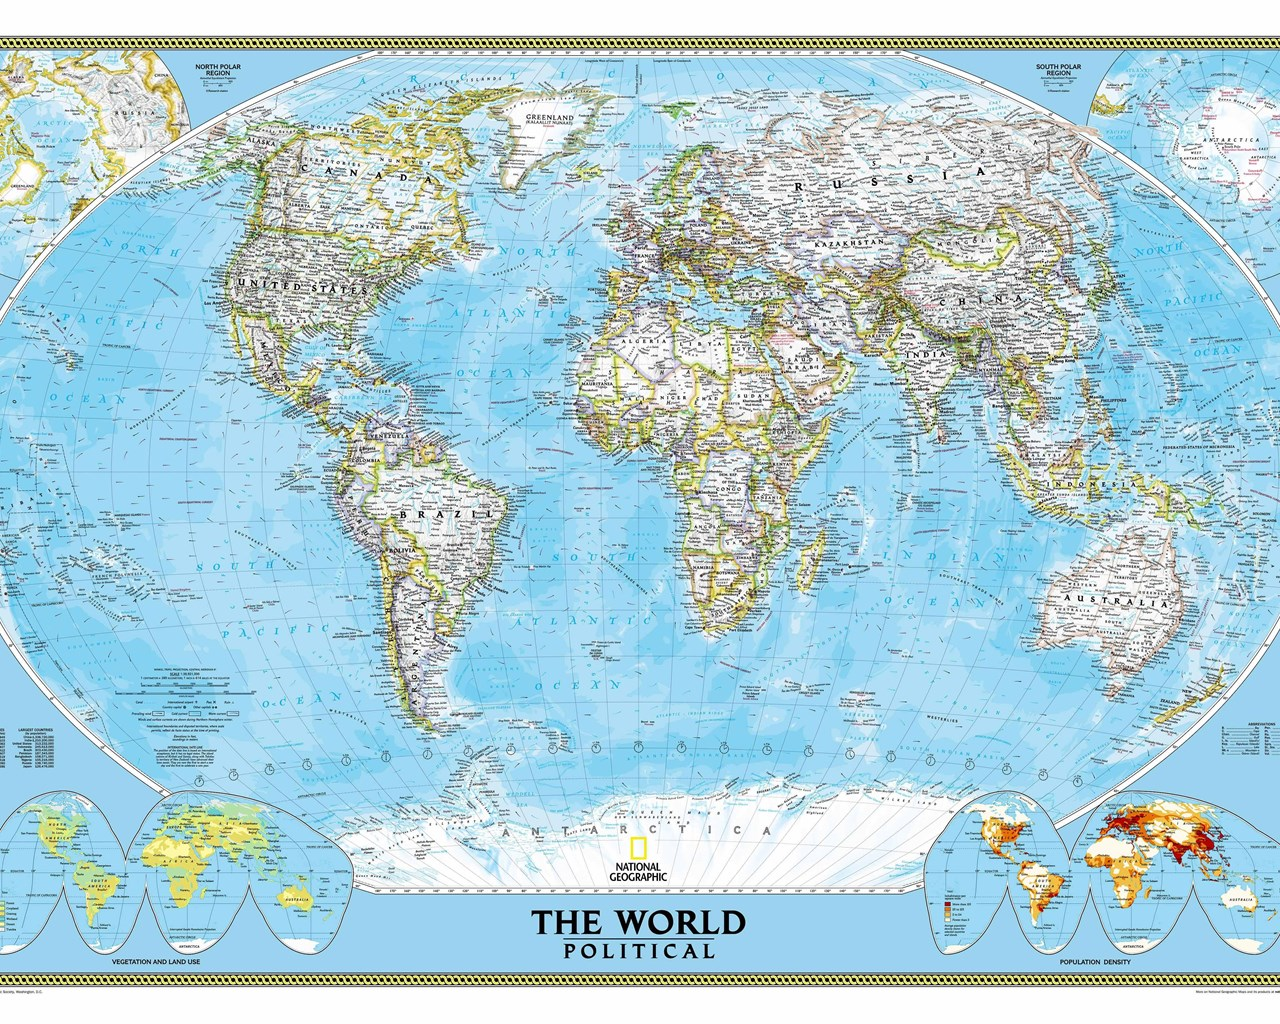 National geographic world map wall mural desktop background widescreen gumiabroncs Images